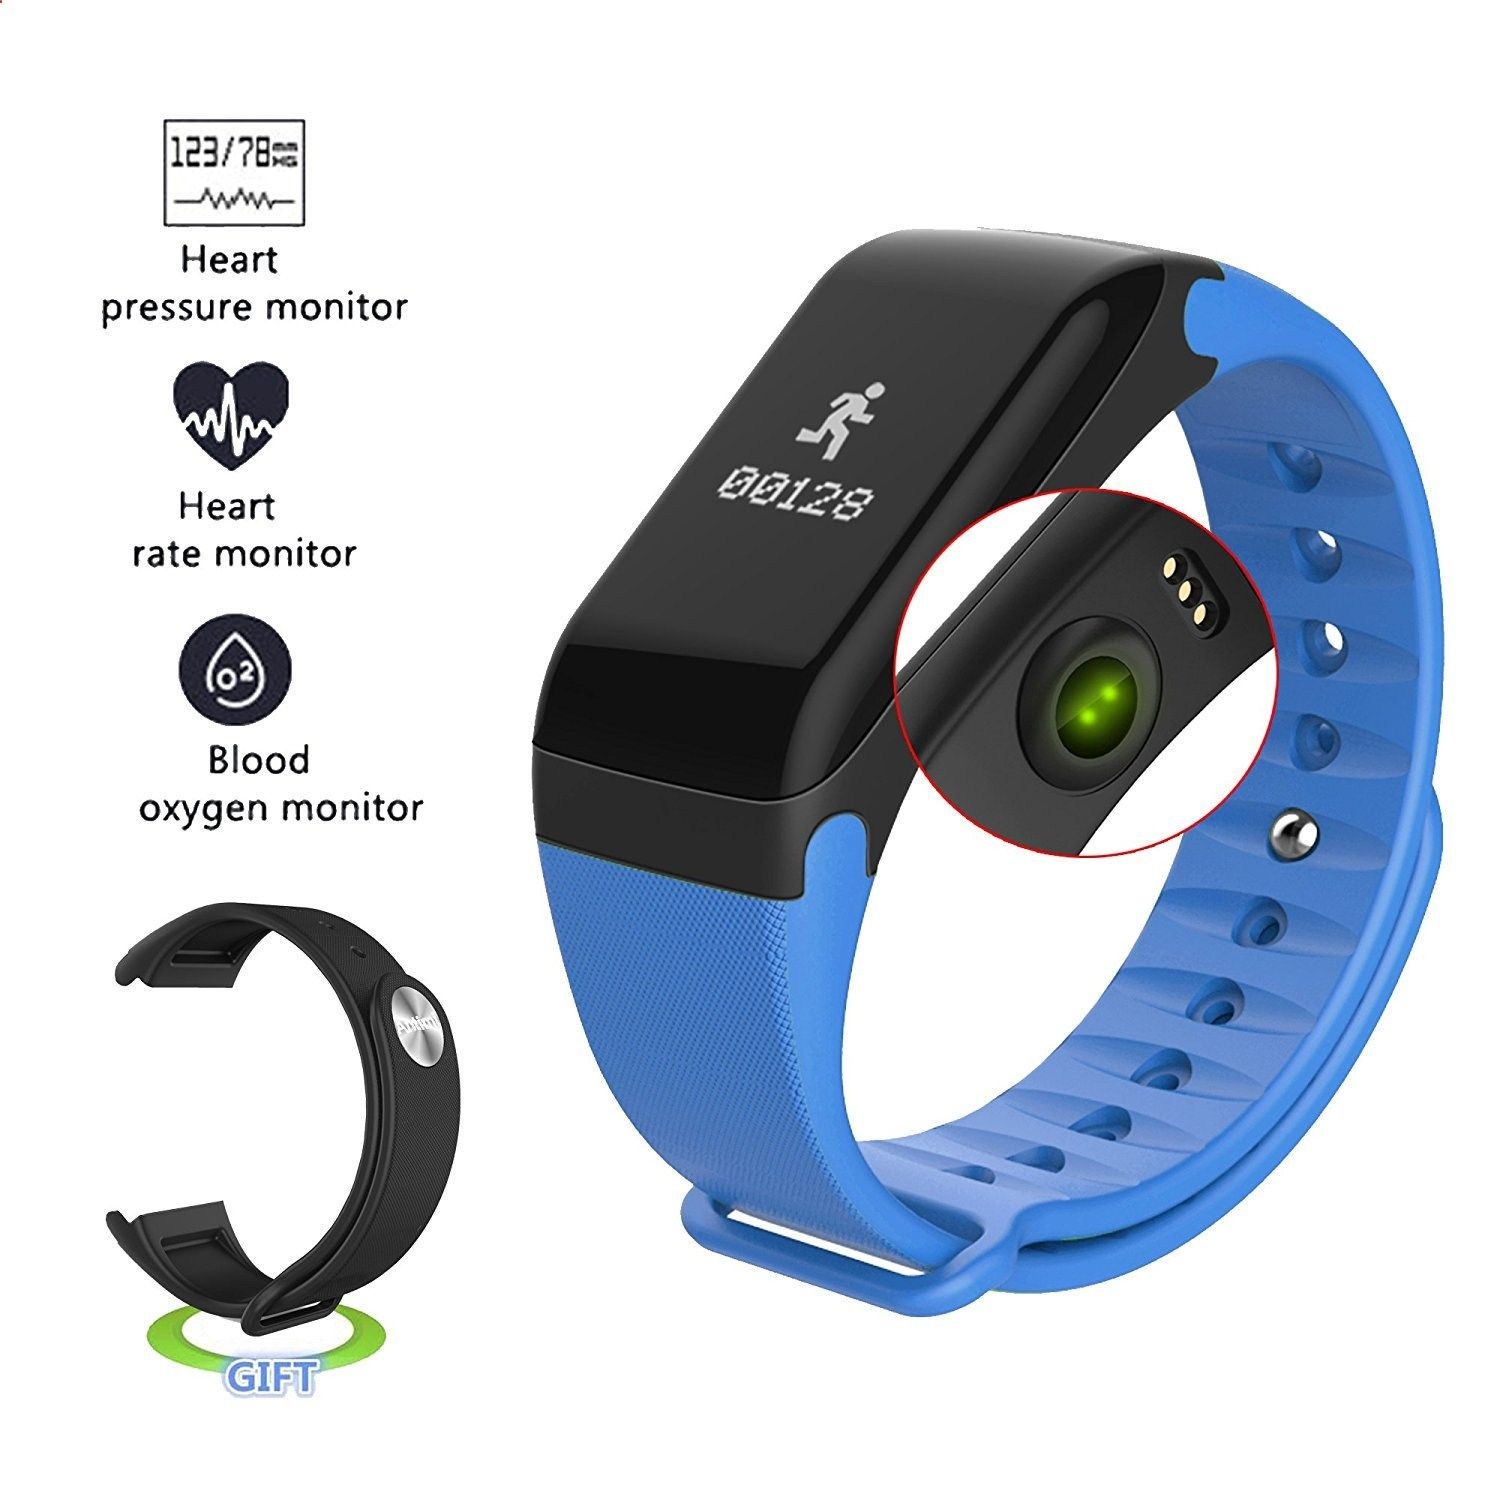 smart bracelet p image tracker watch oled lot watches itm fitness uk sleep wristband sports health sd is loading